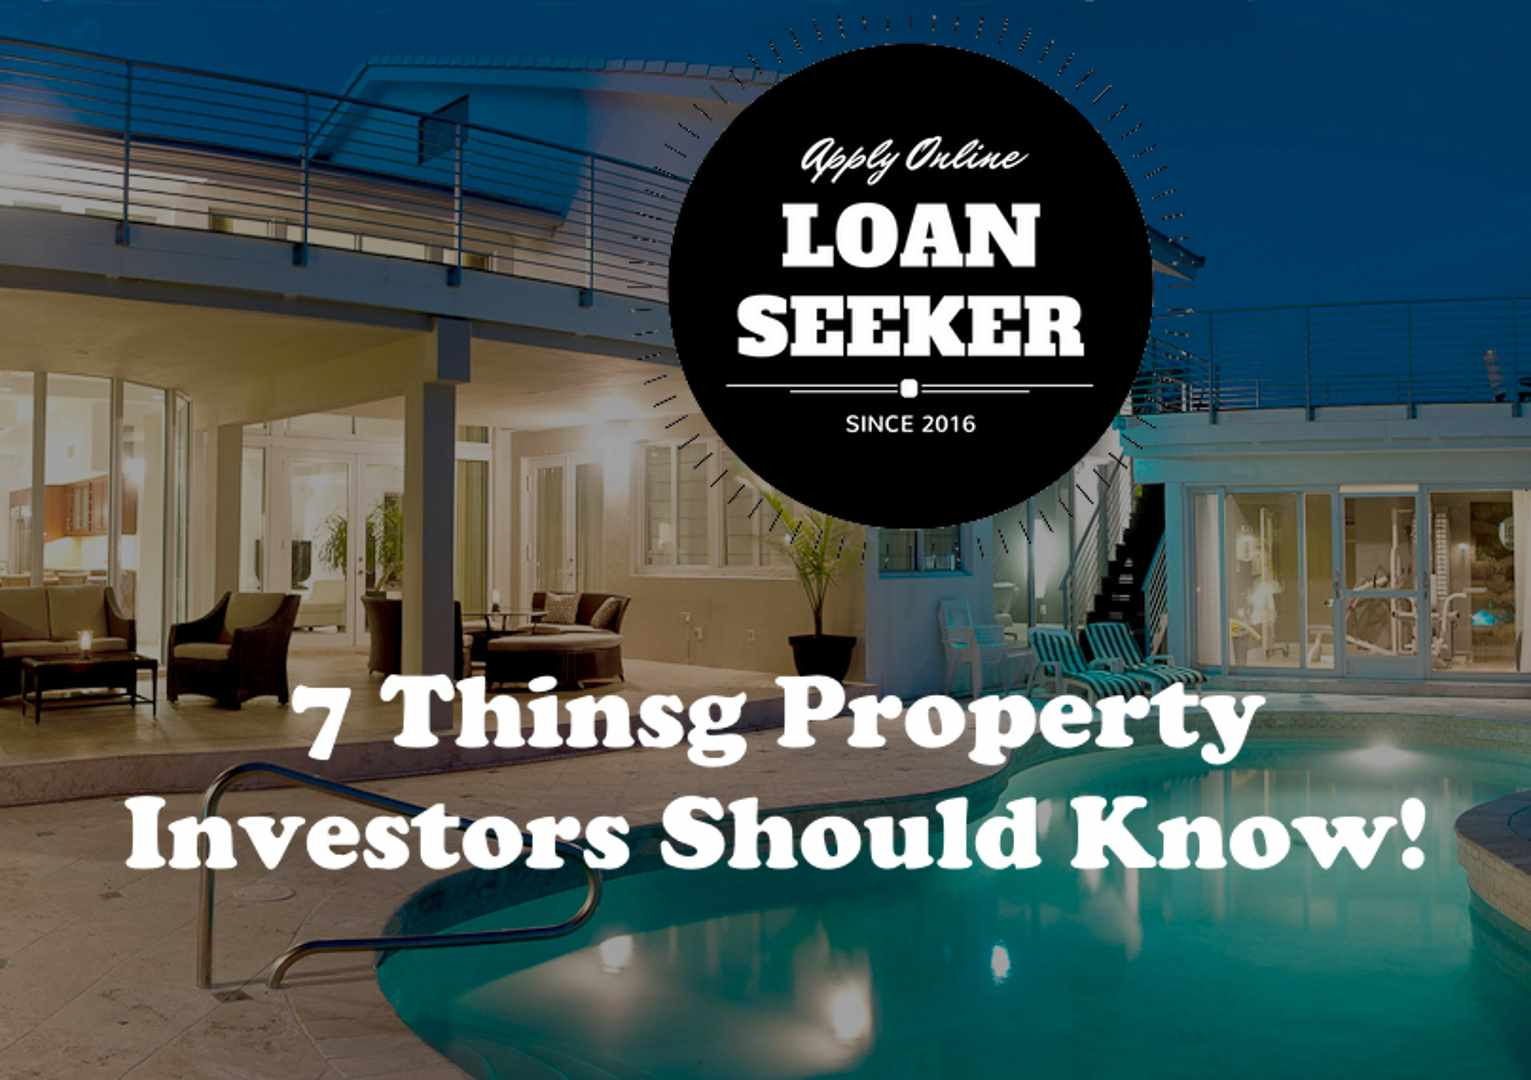 Loanseeker 7 thing property investors should know